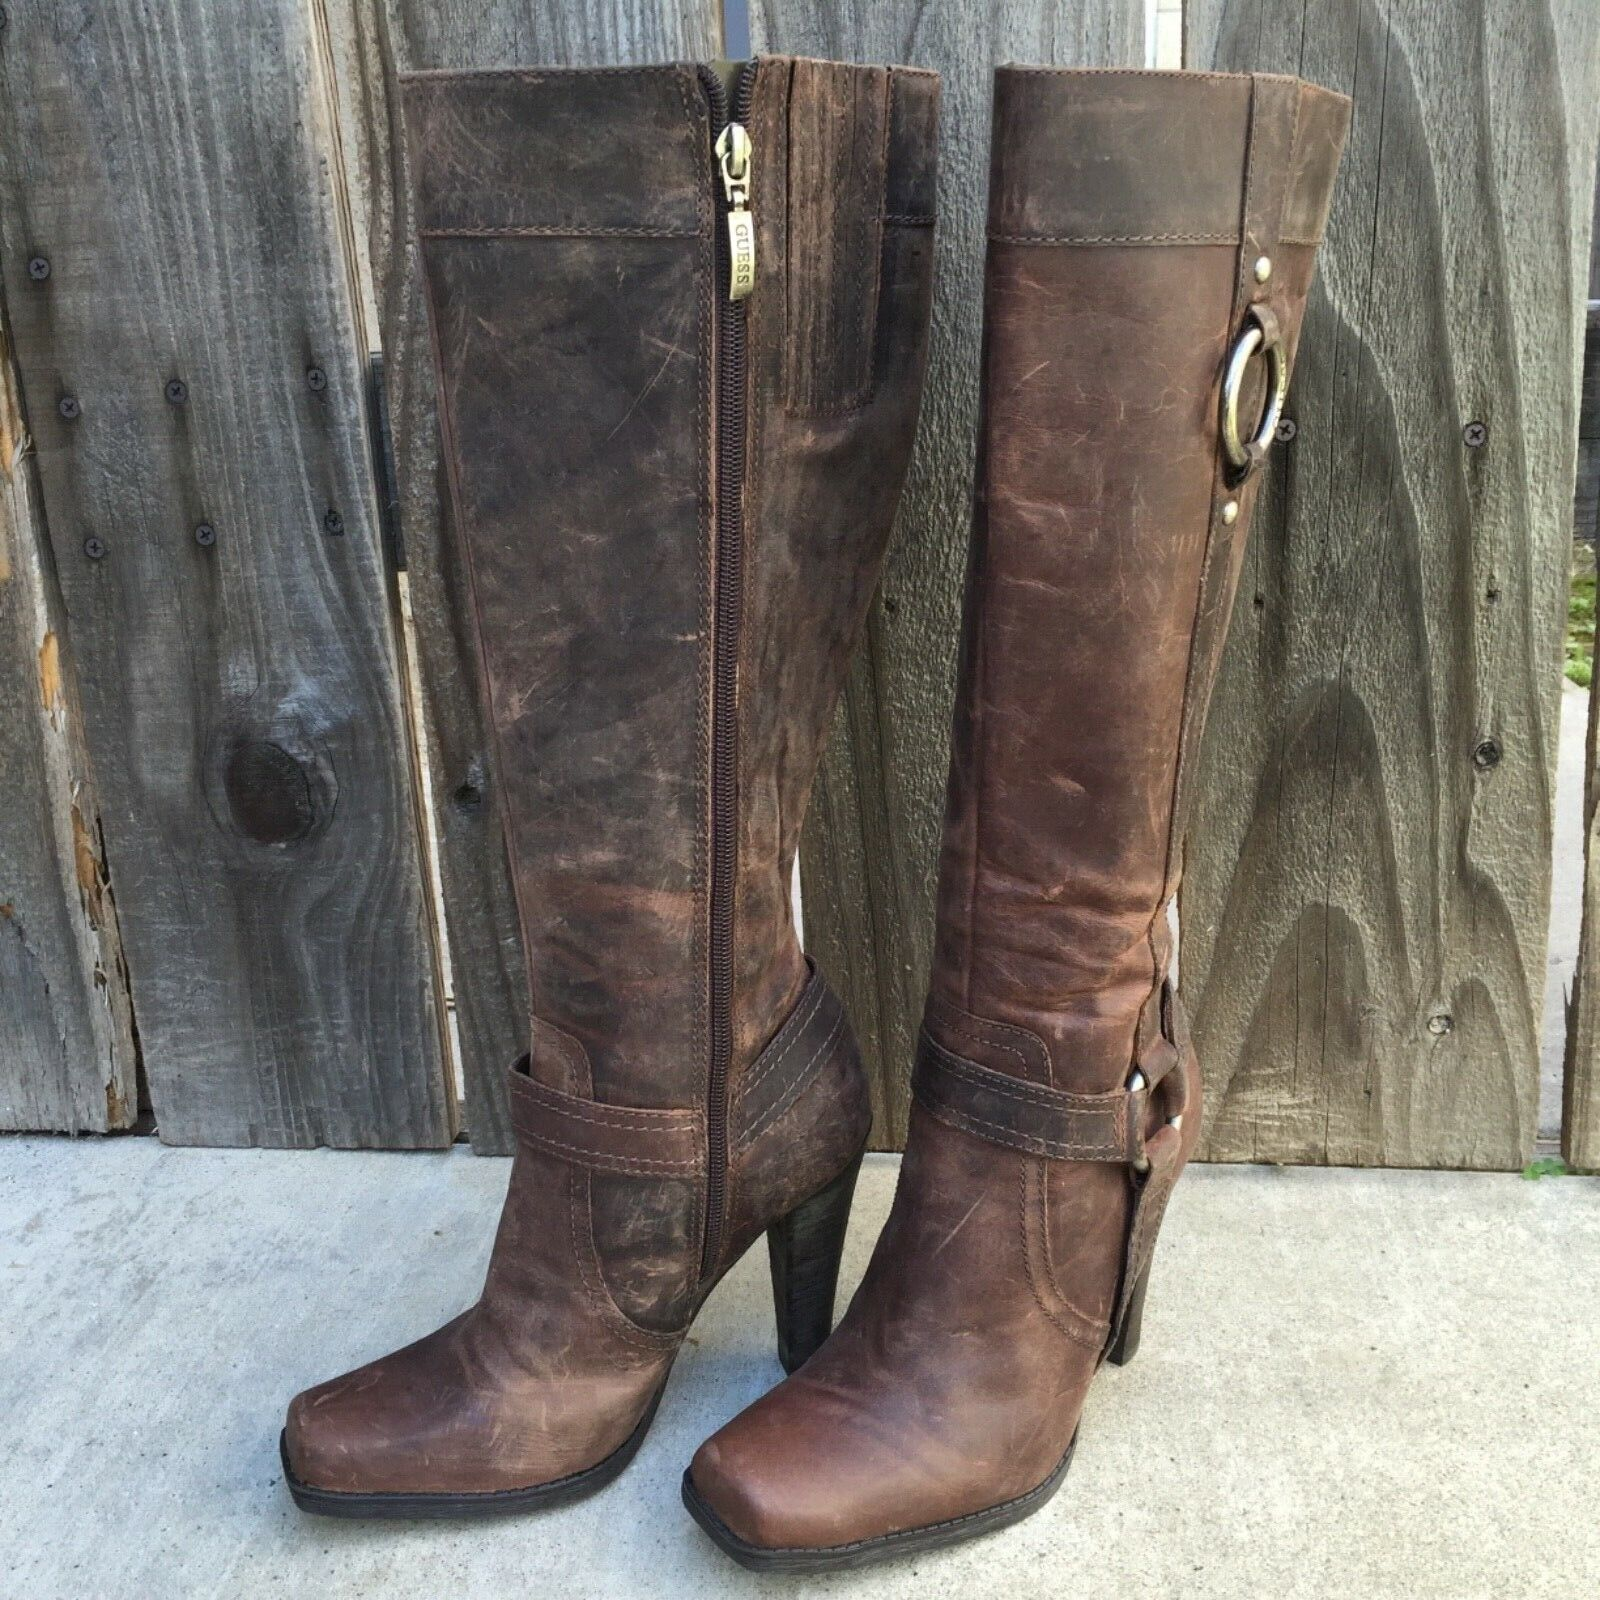 Genuine Leather Guess Biker Boots Brown Distressed 6-6.5 Harness Tall